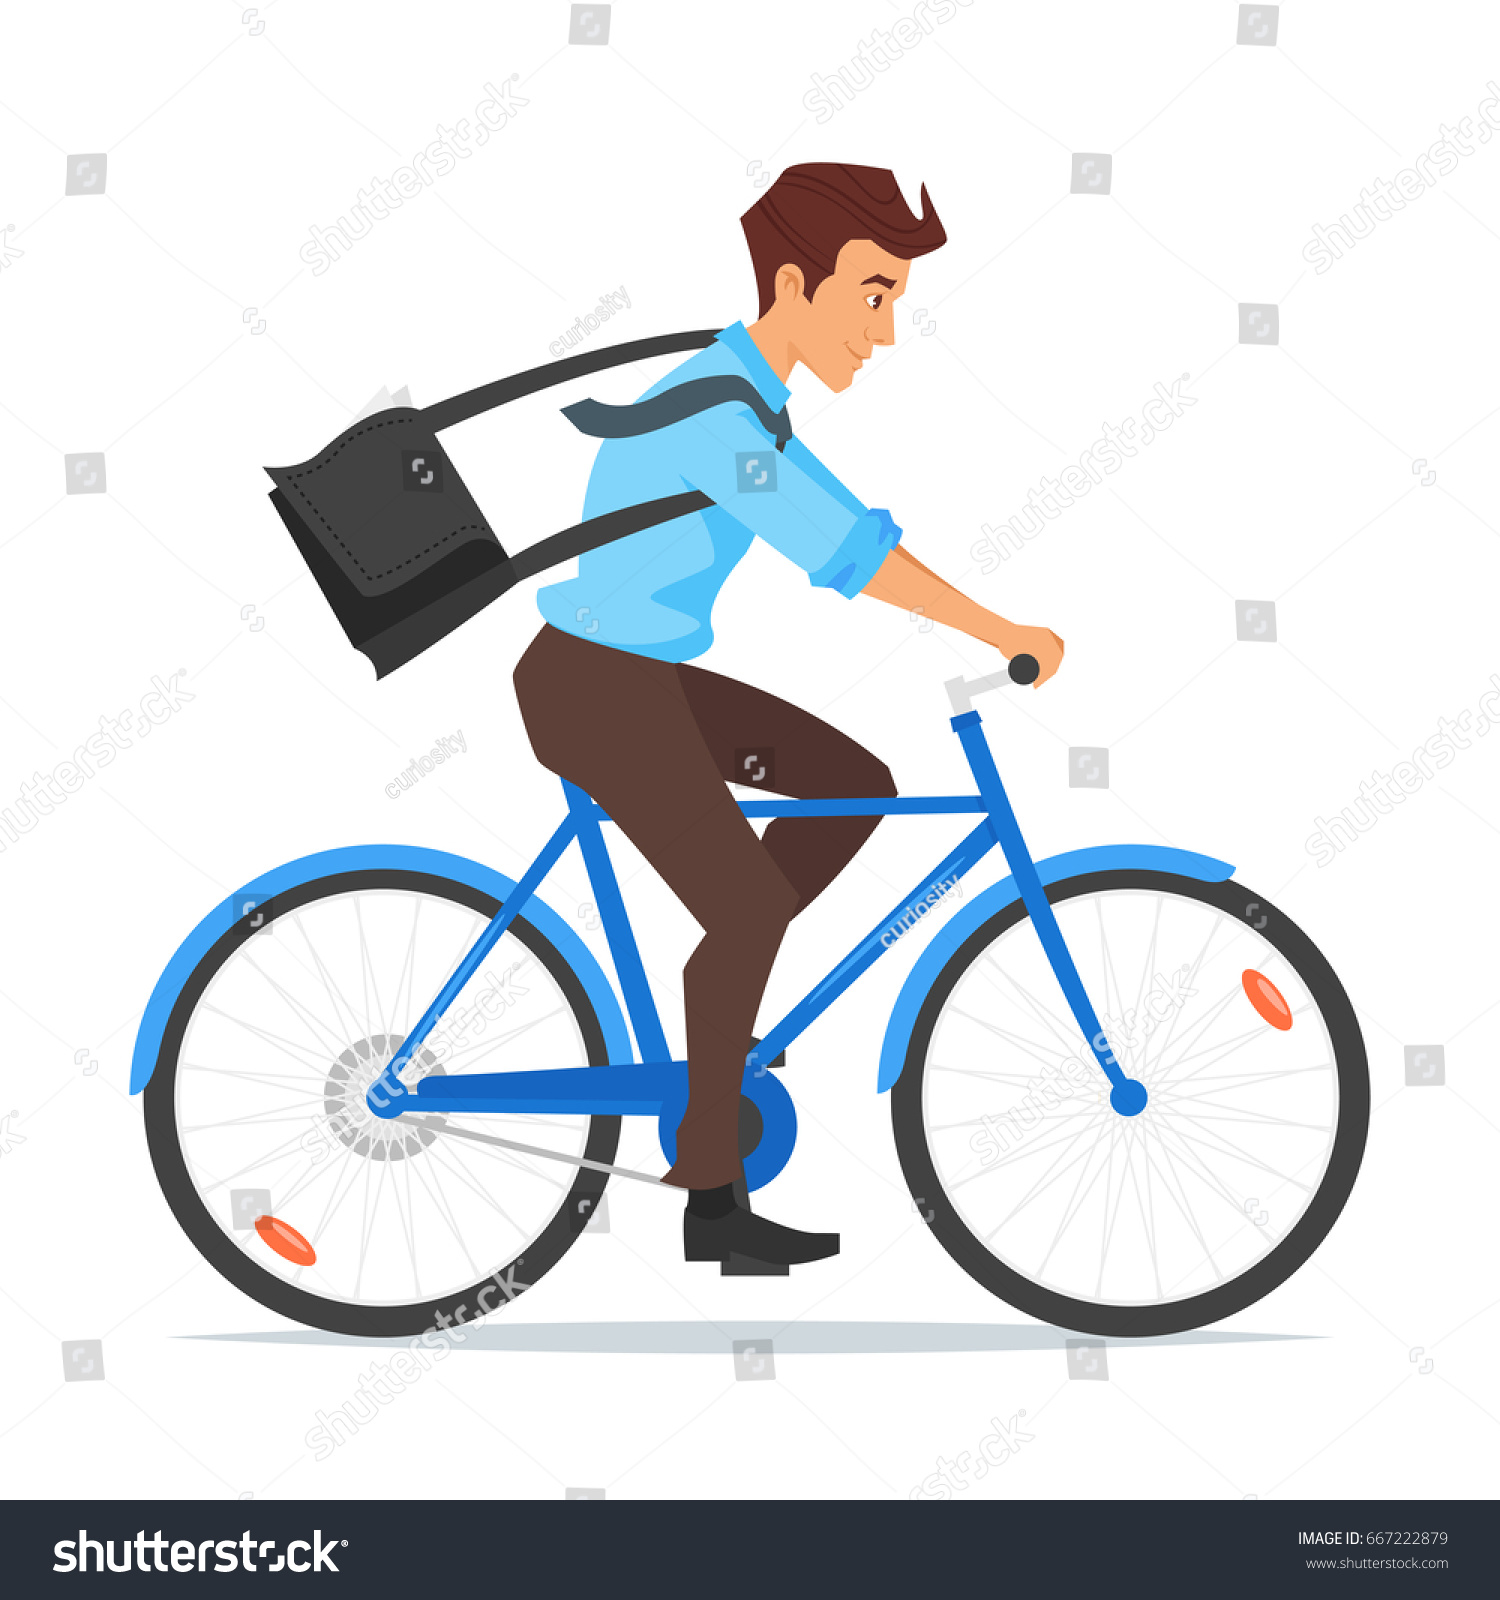 Vector cartoon style illustration of businessman riding on the bike and hurrying to work. Isolated on white background.